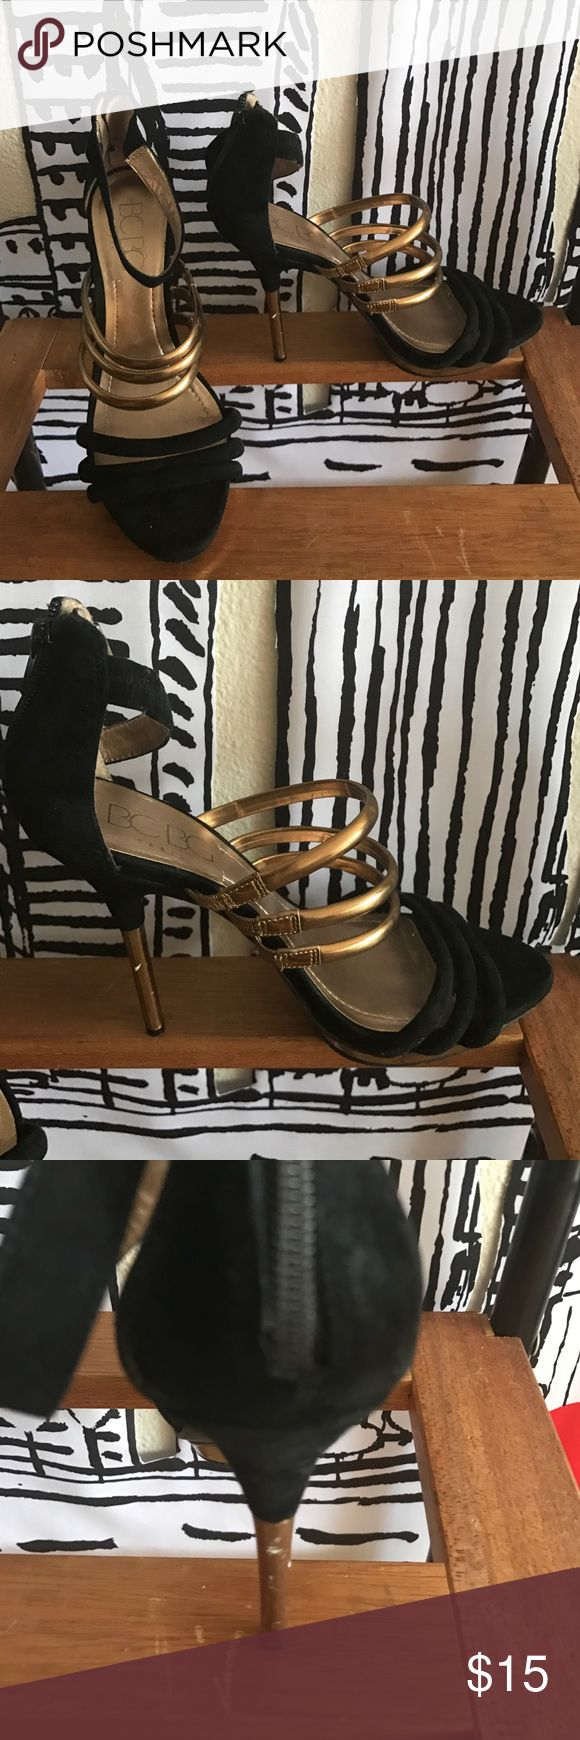 BCBG Strappy Heels BCBG Black and gold metallic strappy Heels. A little wear and tear on the heels but still very wearable. #BCBG #women #heels BCBG Shoes Heels